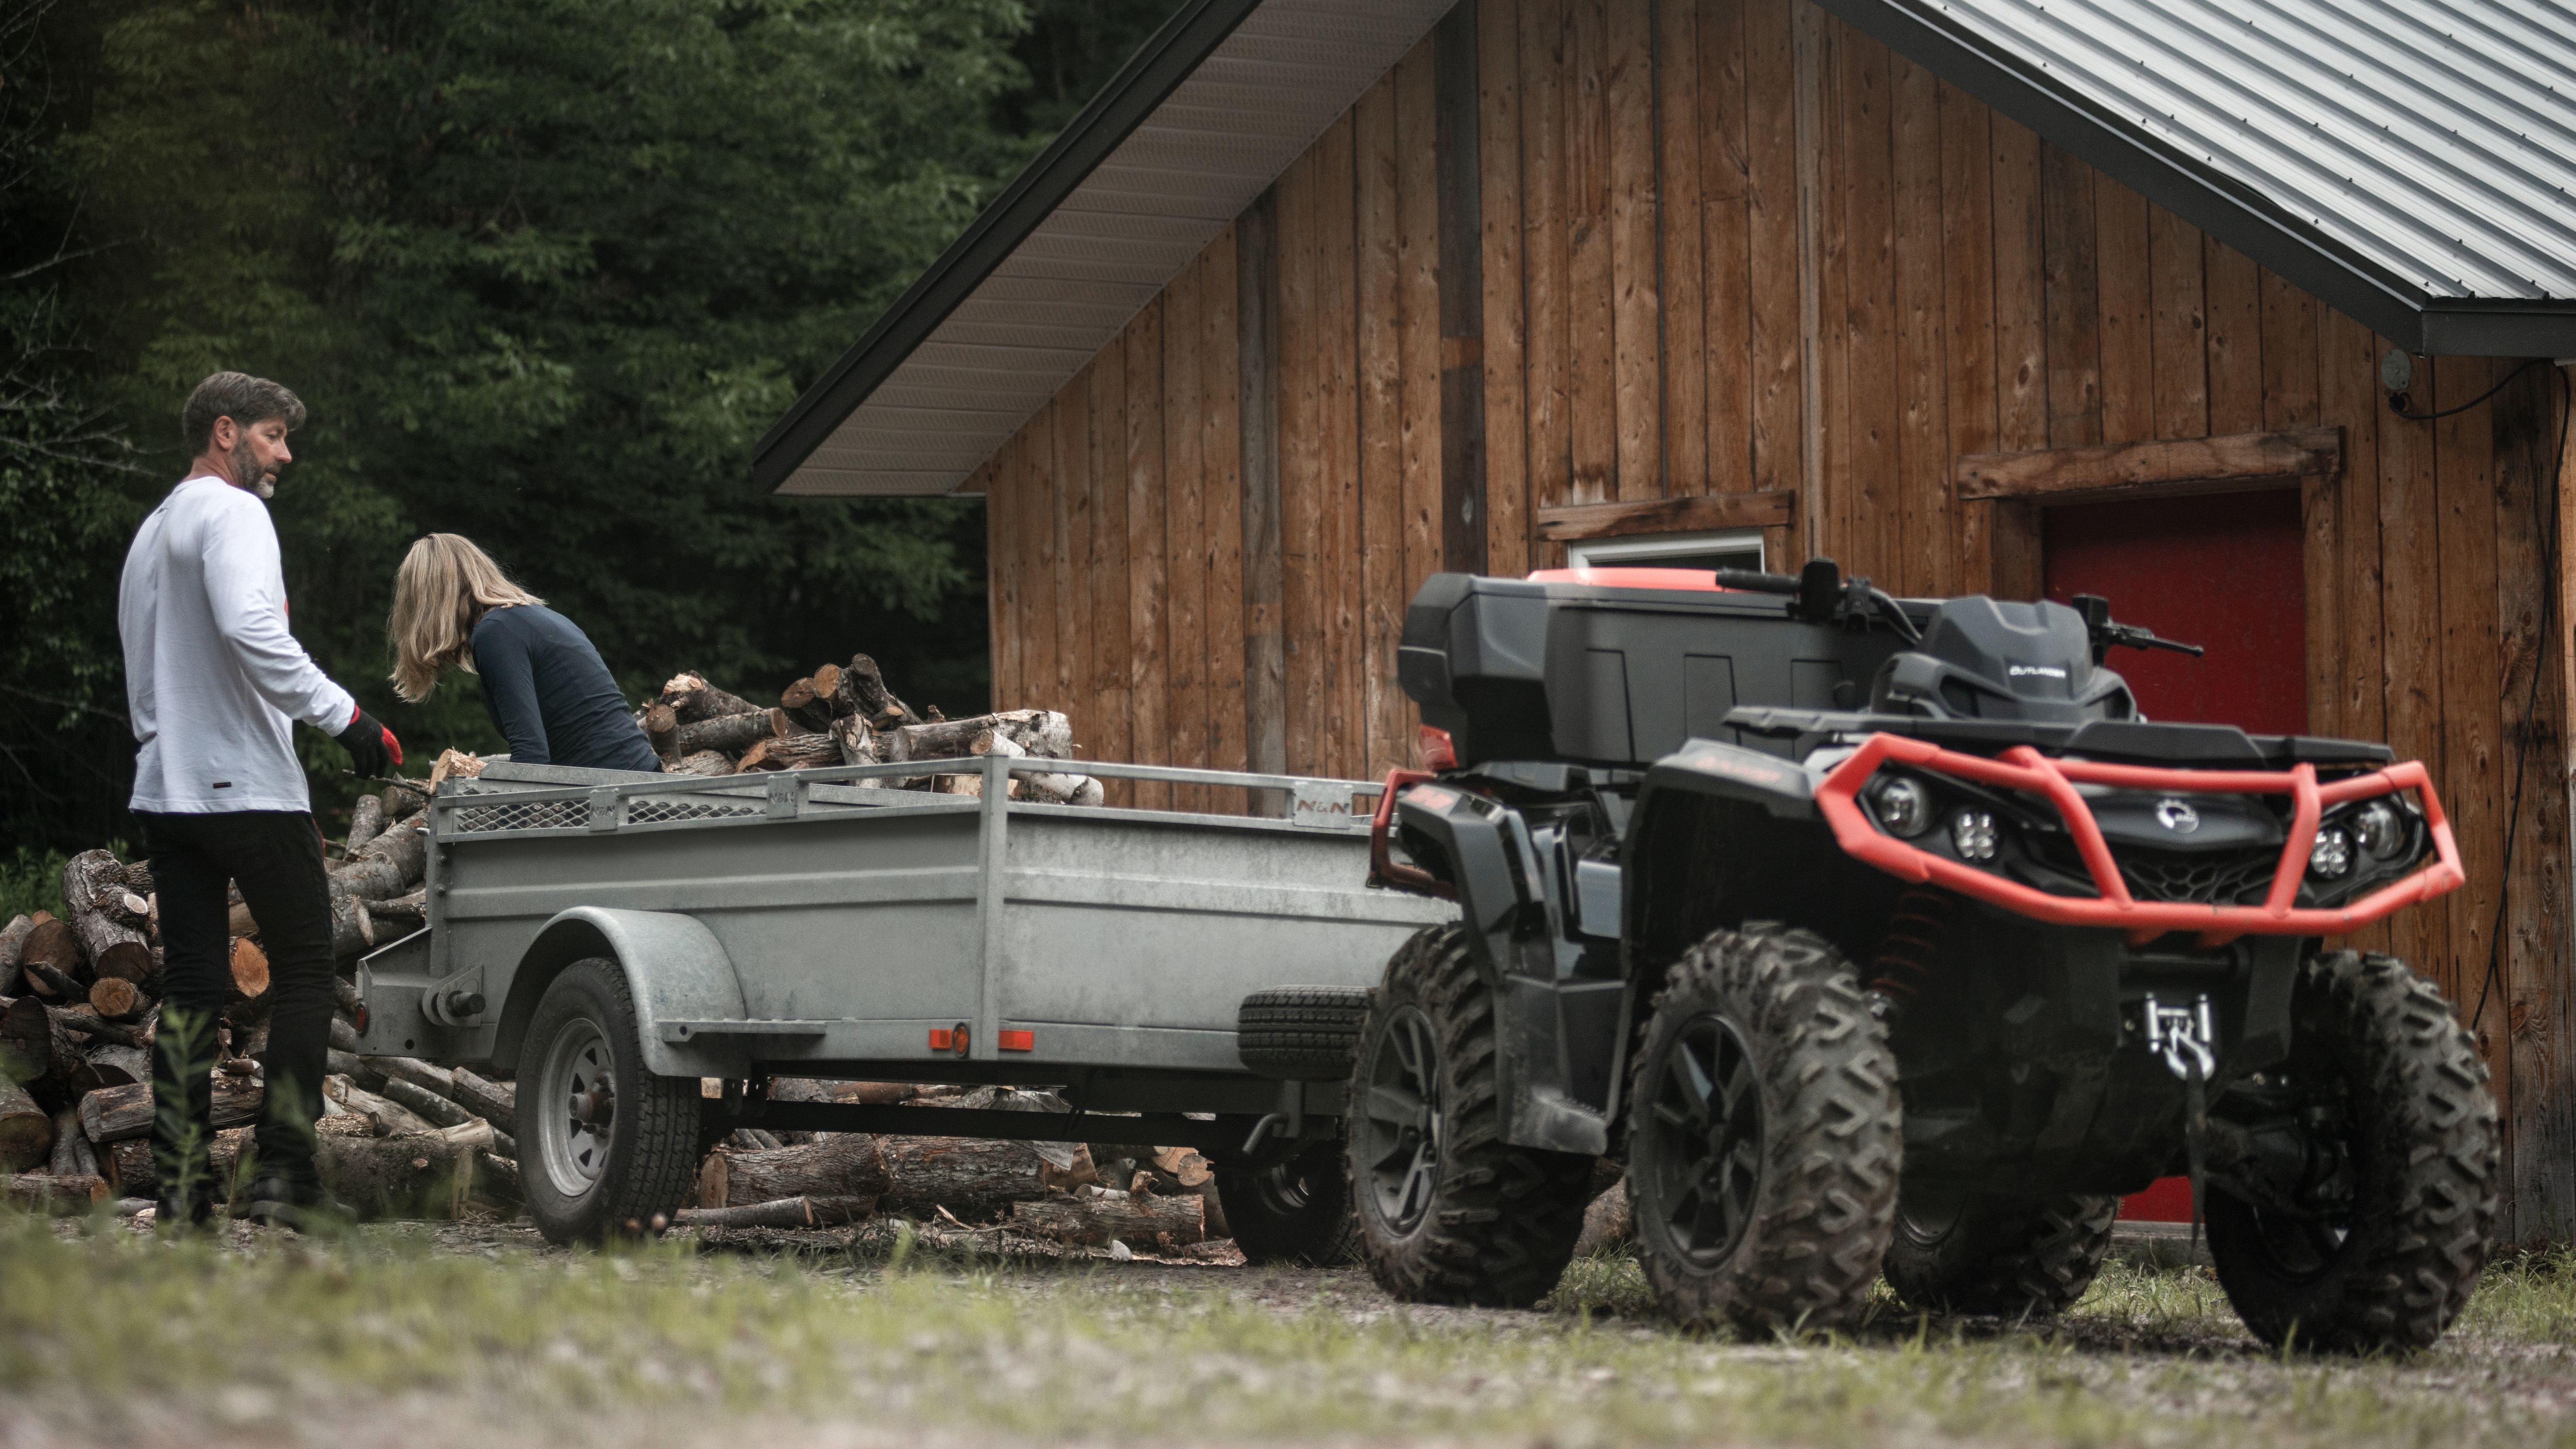 ATV industry leading towing capacity 1650lb